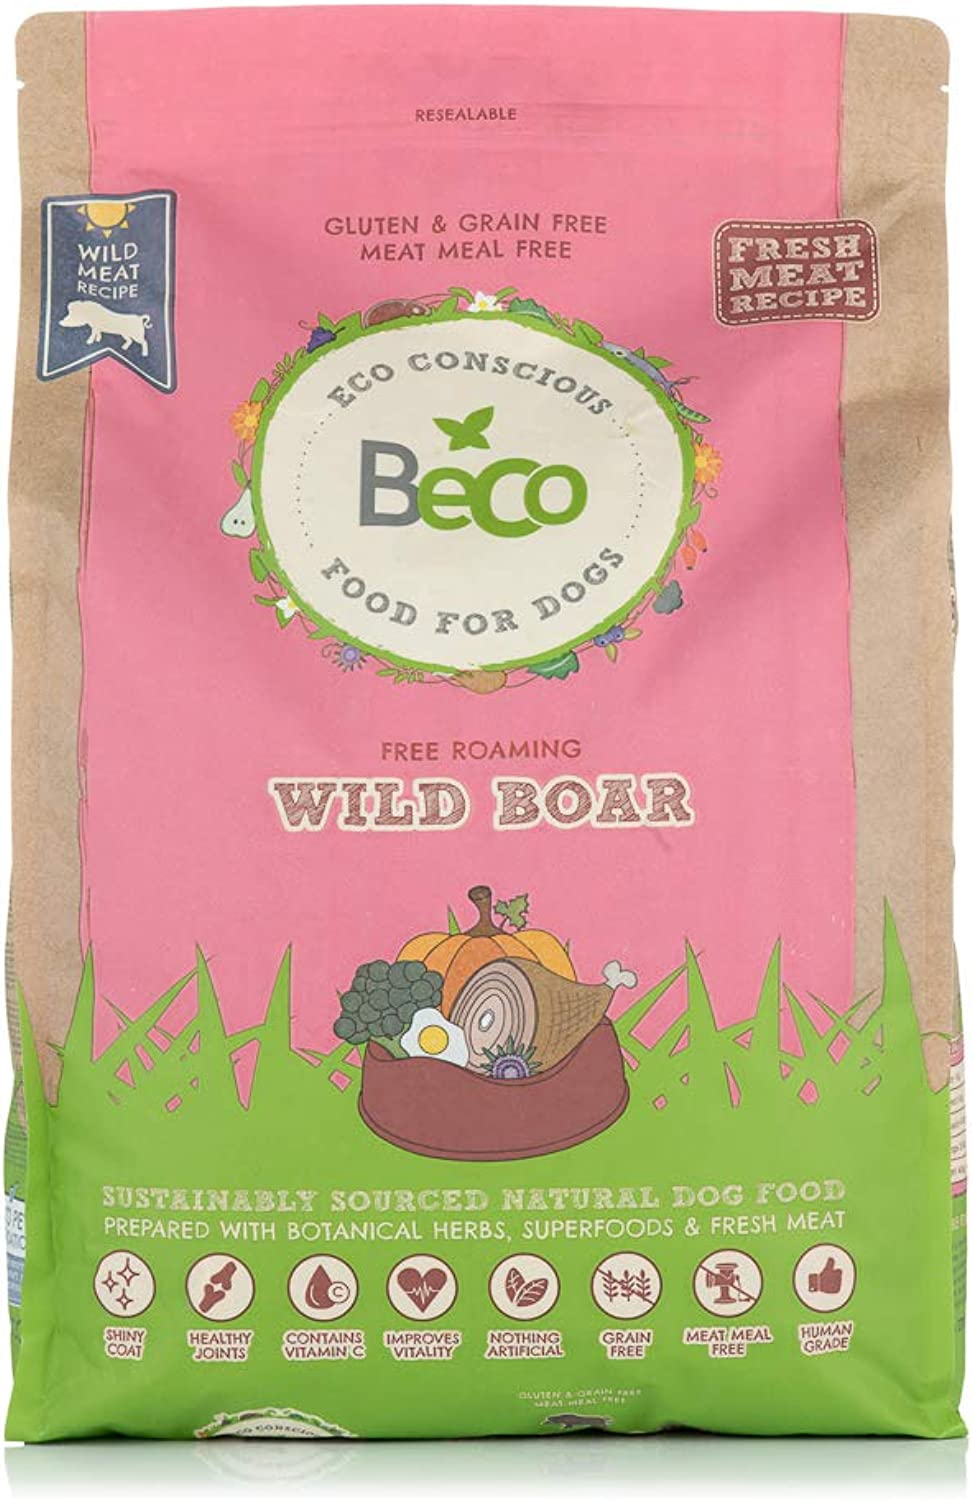 Beco Dog Food  Wild Boar with Broccoli and Pumpkin  6kg  Natural Grain Free Ethical Dog Food with No Artificial Preservatives